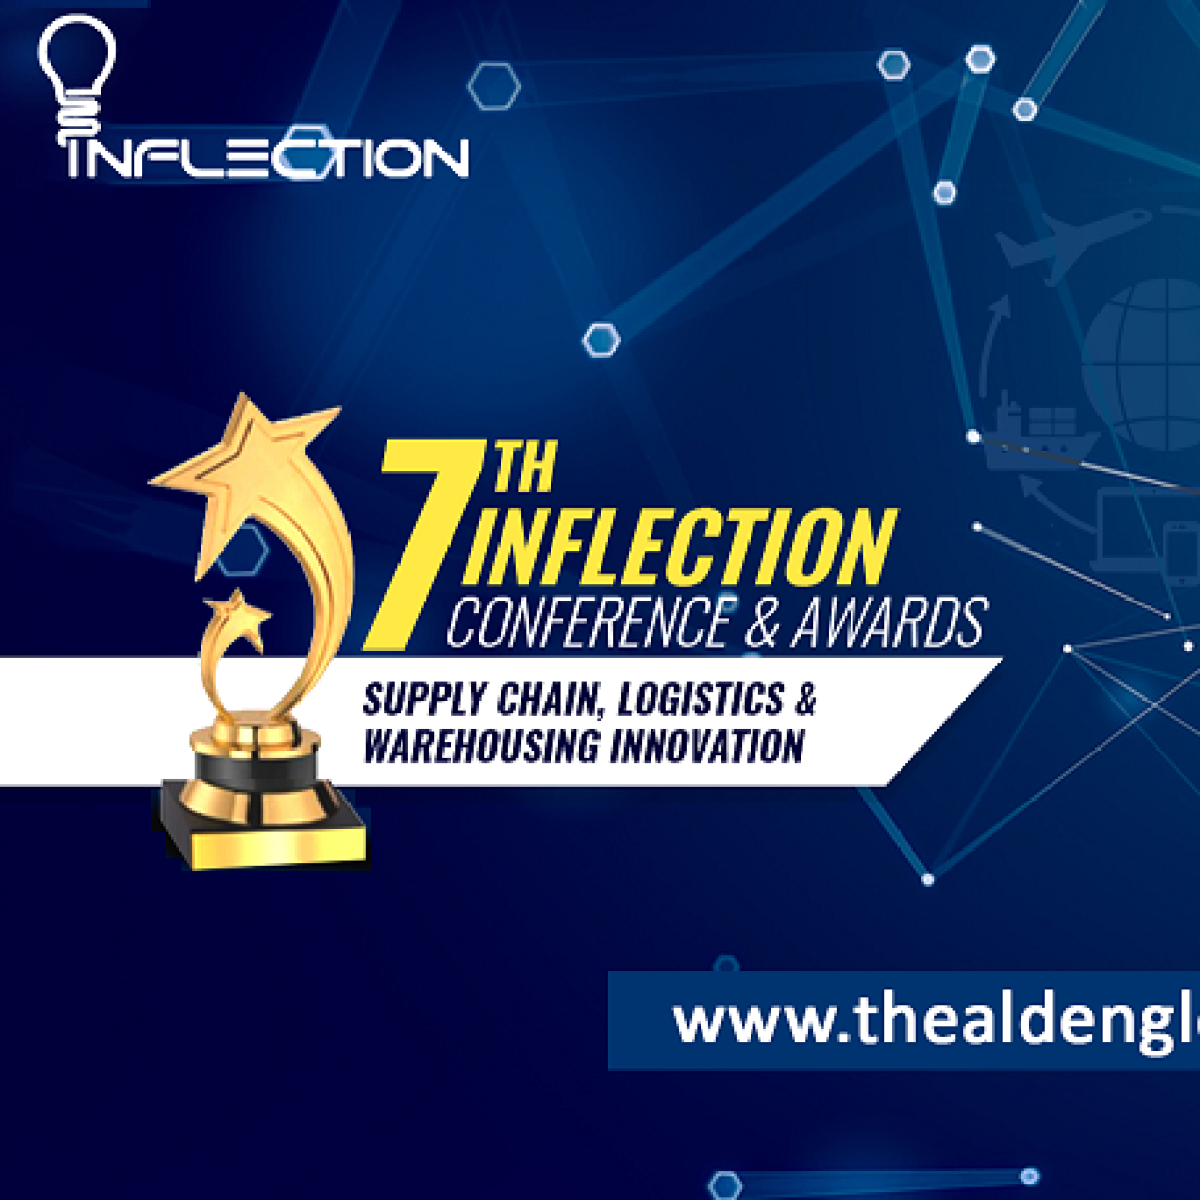 7th Inflection Conference & Awards concluded successfully